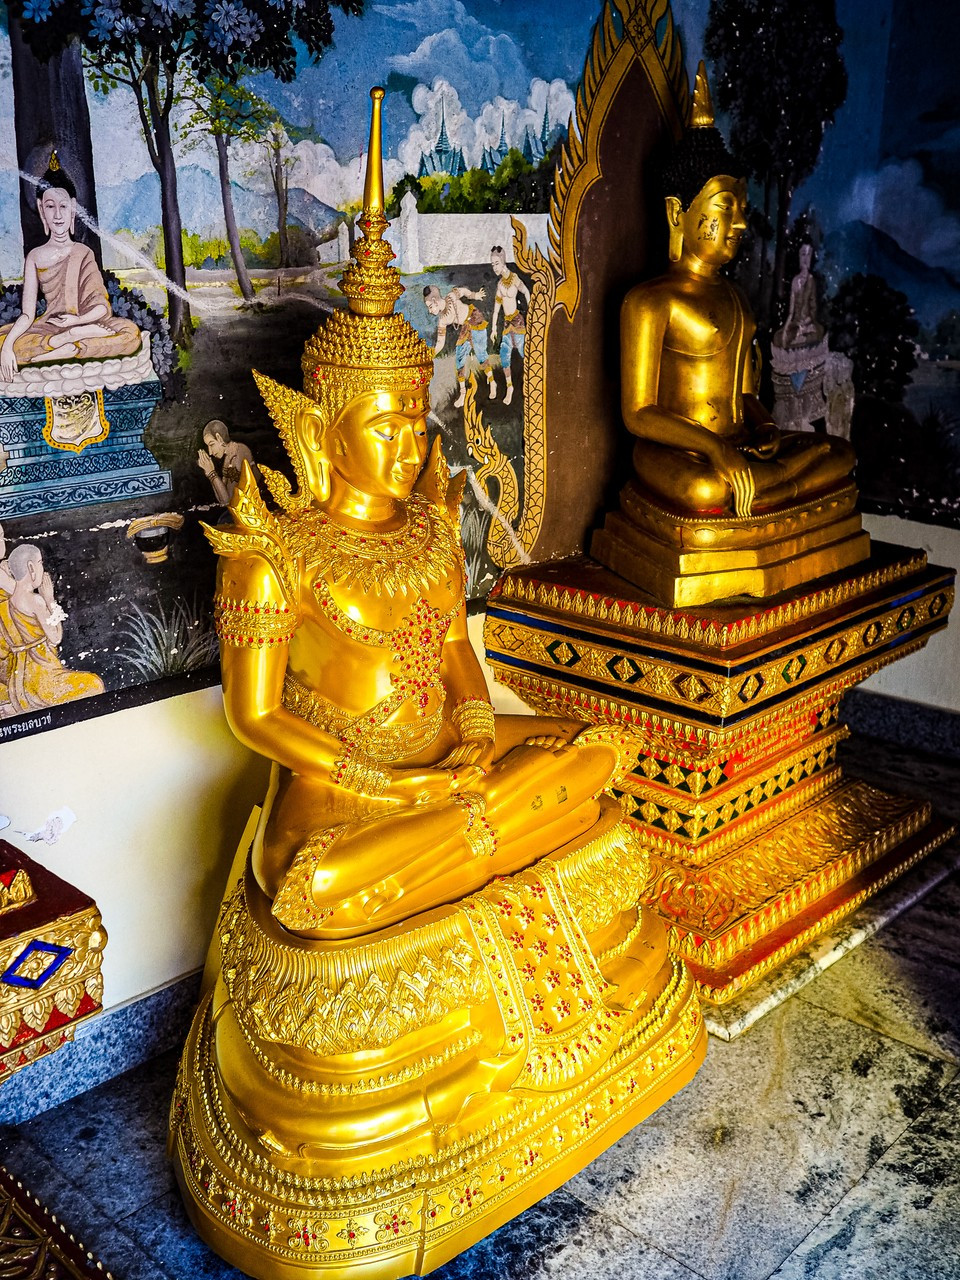 A golden Buddha at Wat Phra That Doi Suthep, Chiang Mai, Thailand